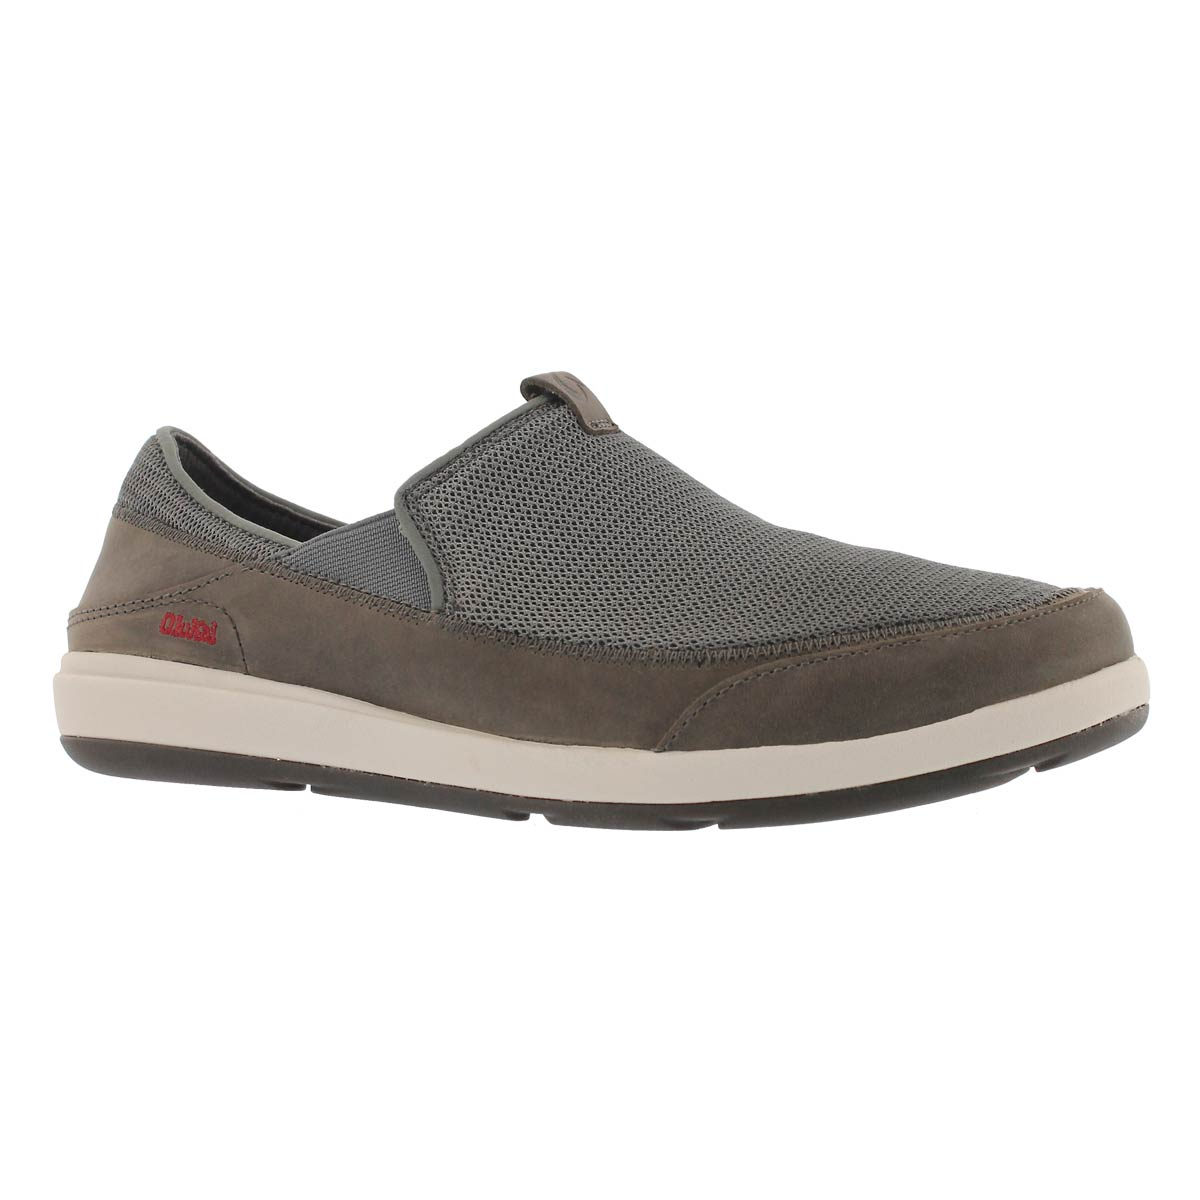 Men's MAKIA charcoal slip on casual shoes